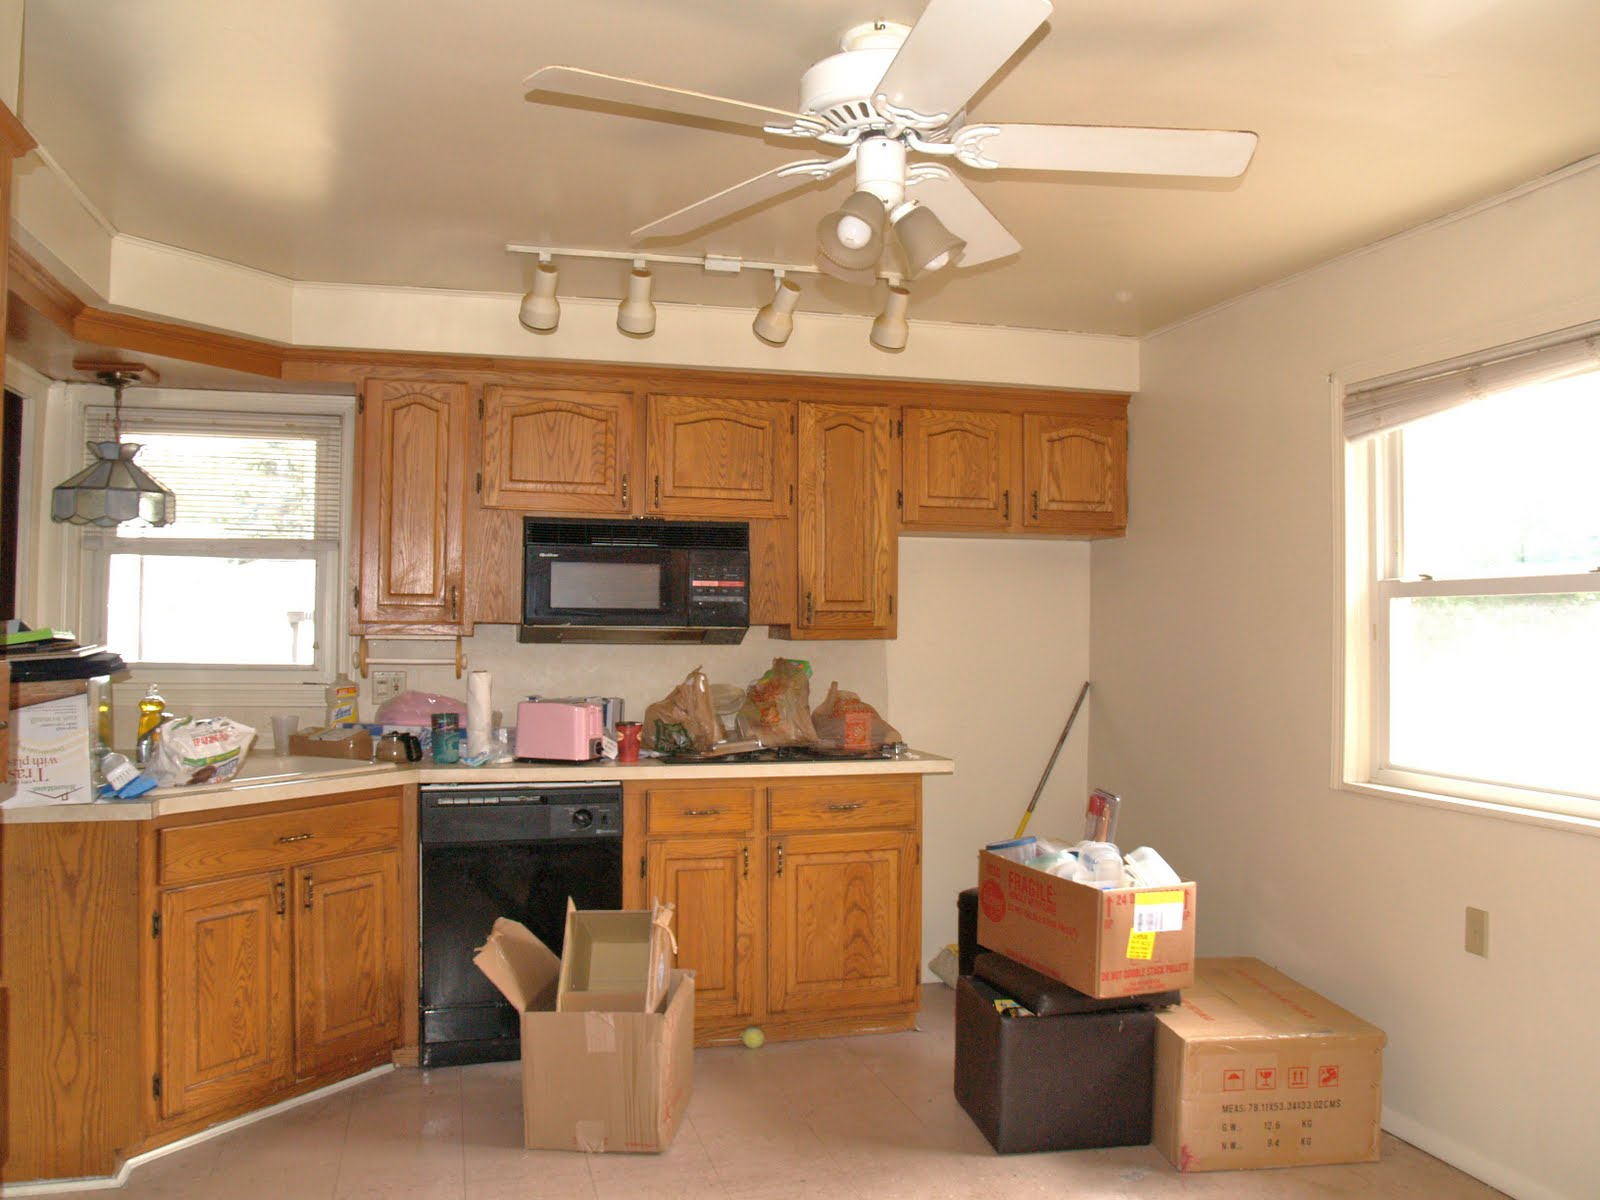 Ceiling Fan with Track Lighting in Kitchen